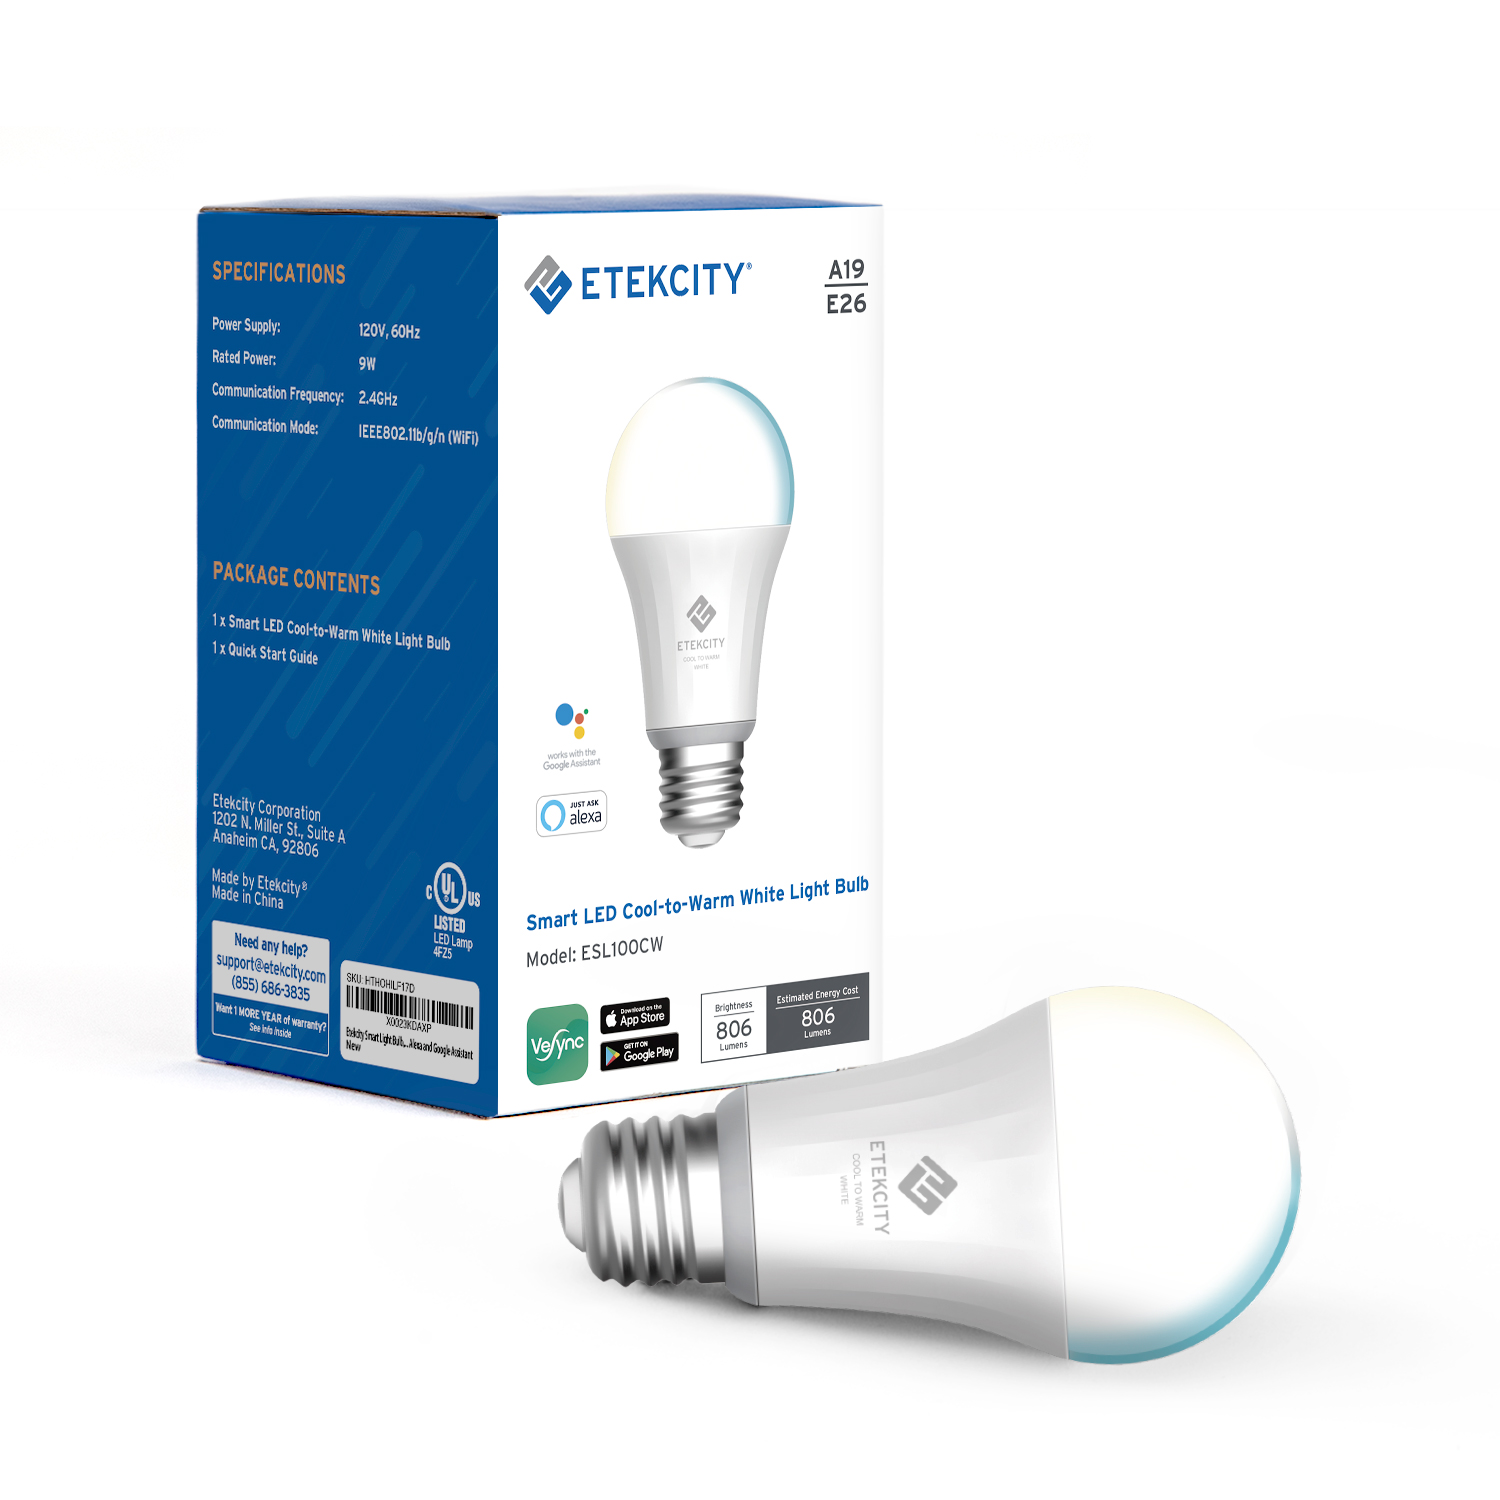 1.01_LP_HTHOHILF17D_ESL100CW-Smart-LED-Cool-to-Warm-White-Light-Bulb_00b.jpg